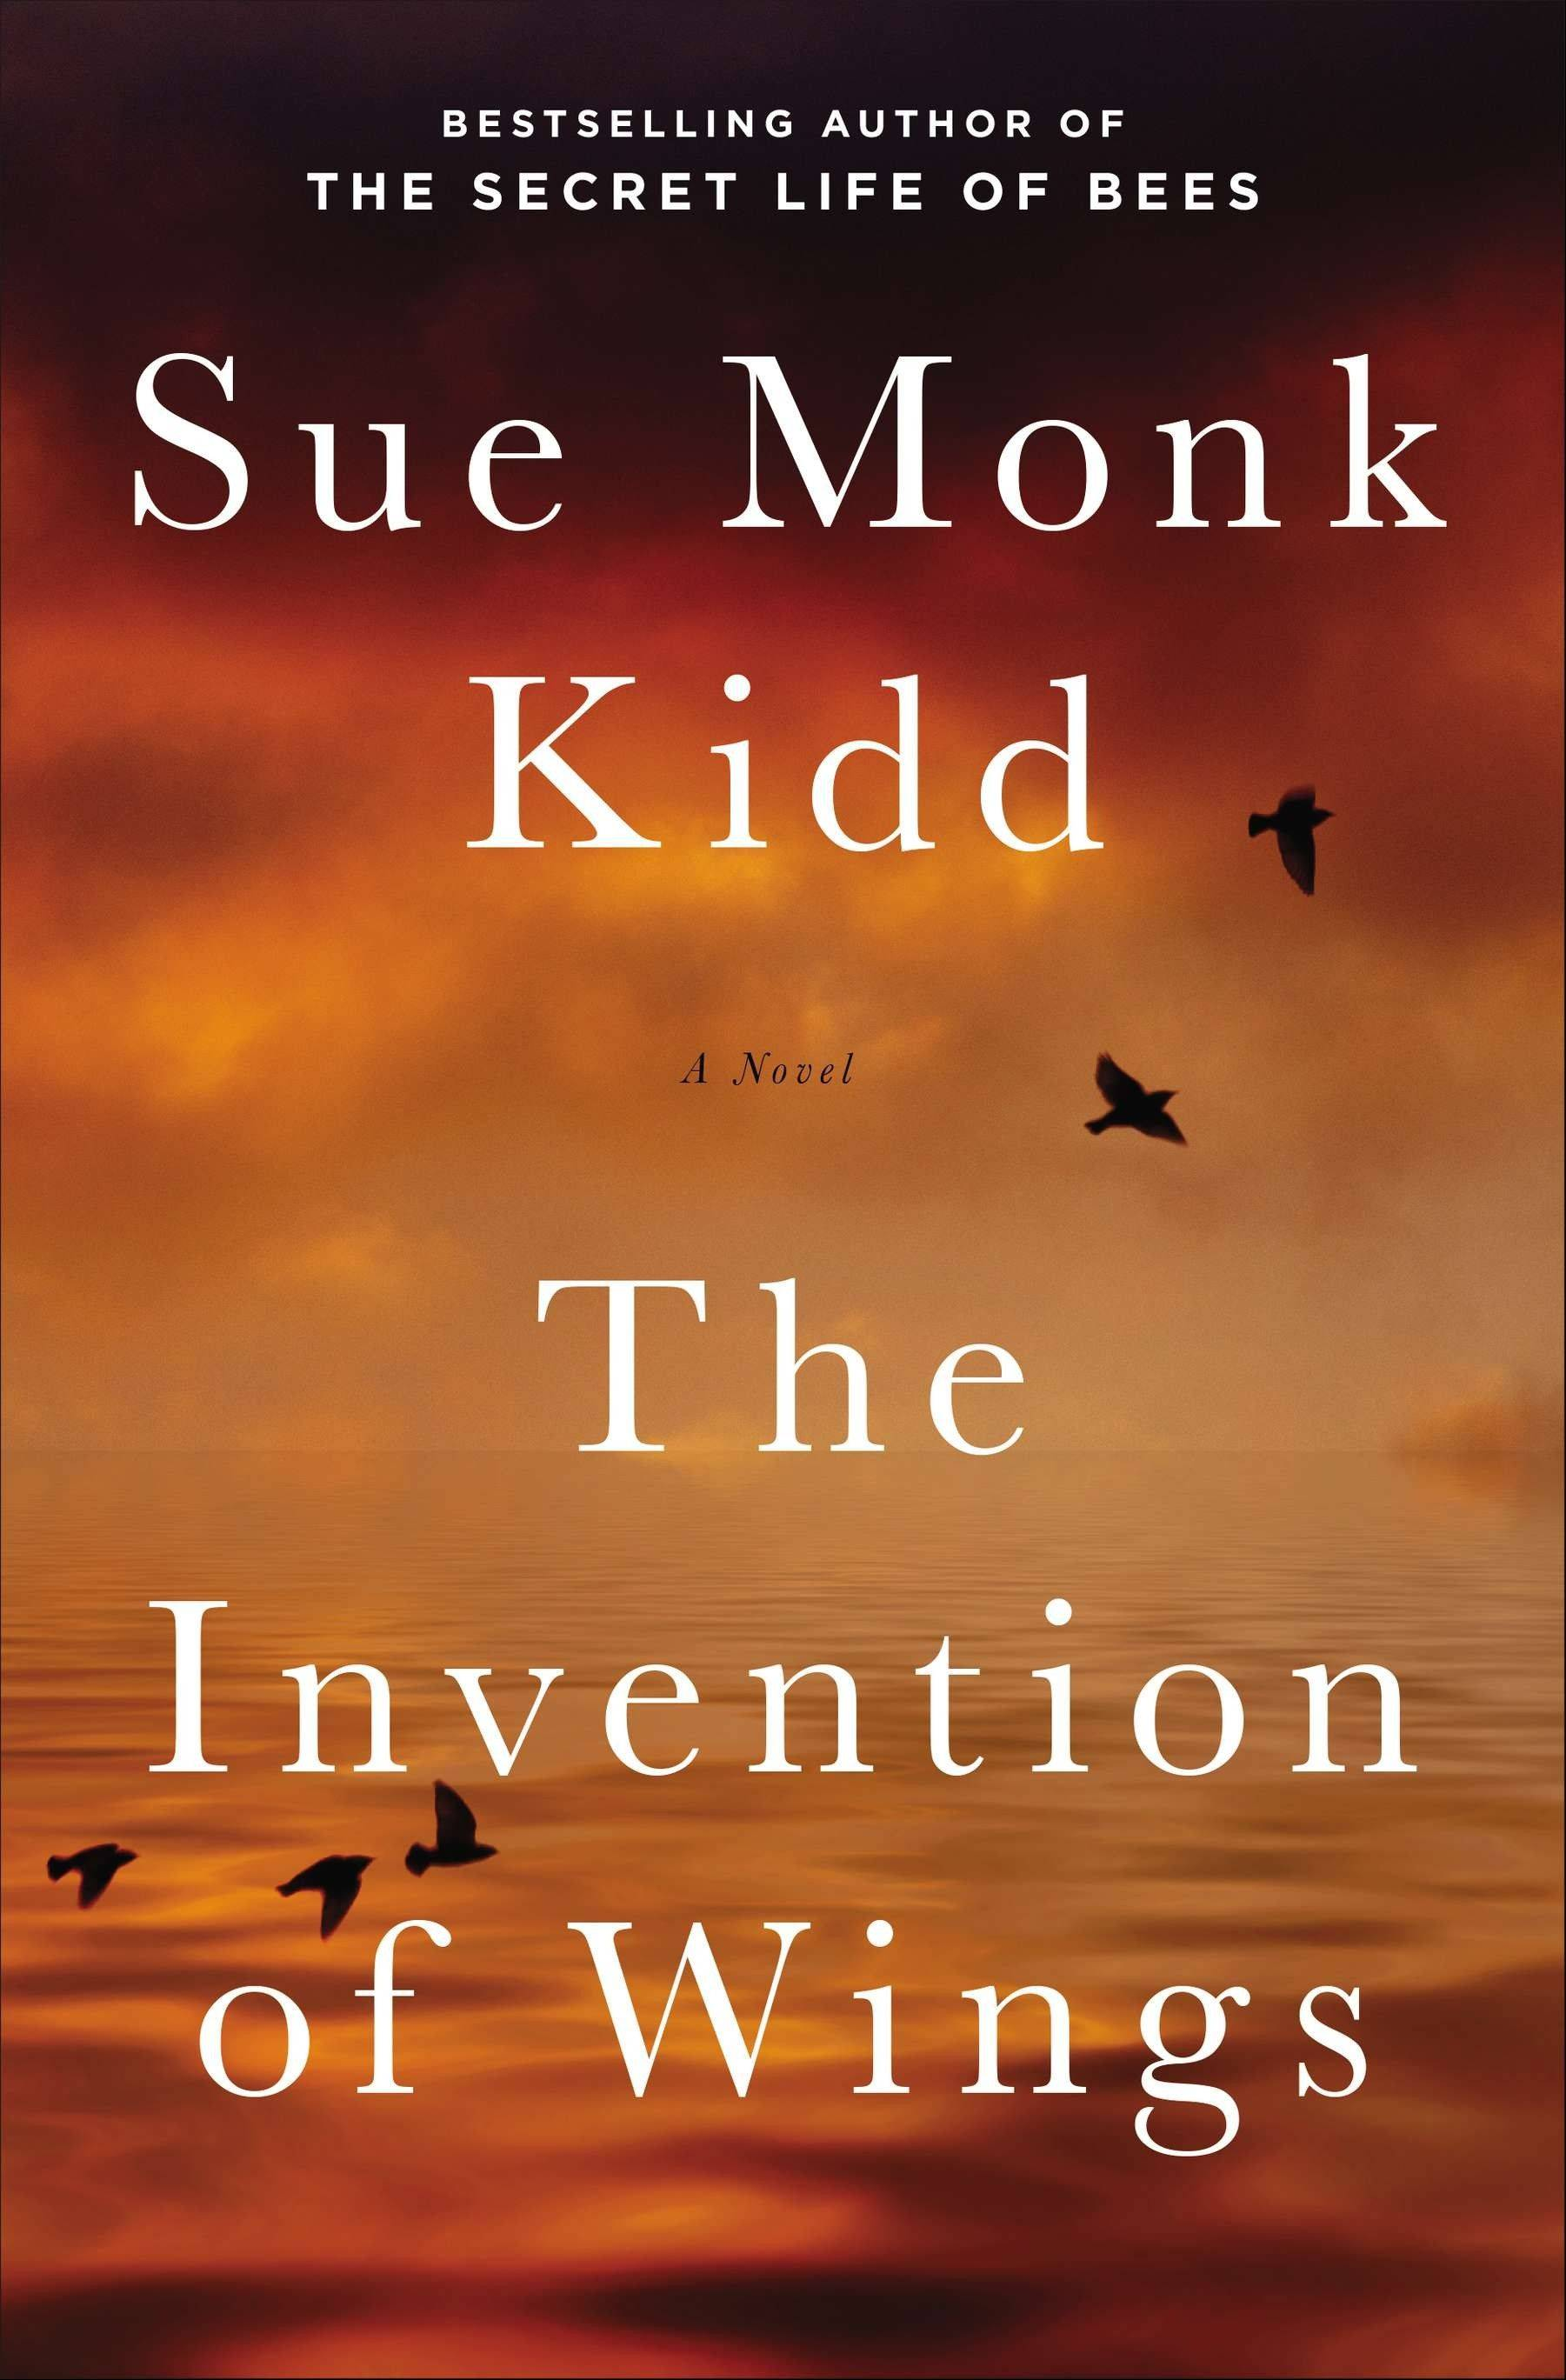 """The Invention of Wings"" by Sue Monk Kidd is based on the life of Sarah Grimke, a 19th-century abolitionist from an affluent plantation-owning family in North Carolina."